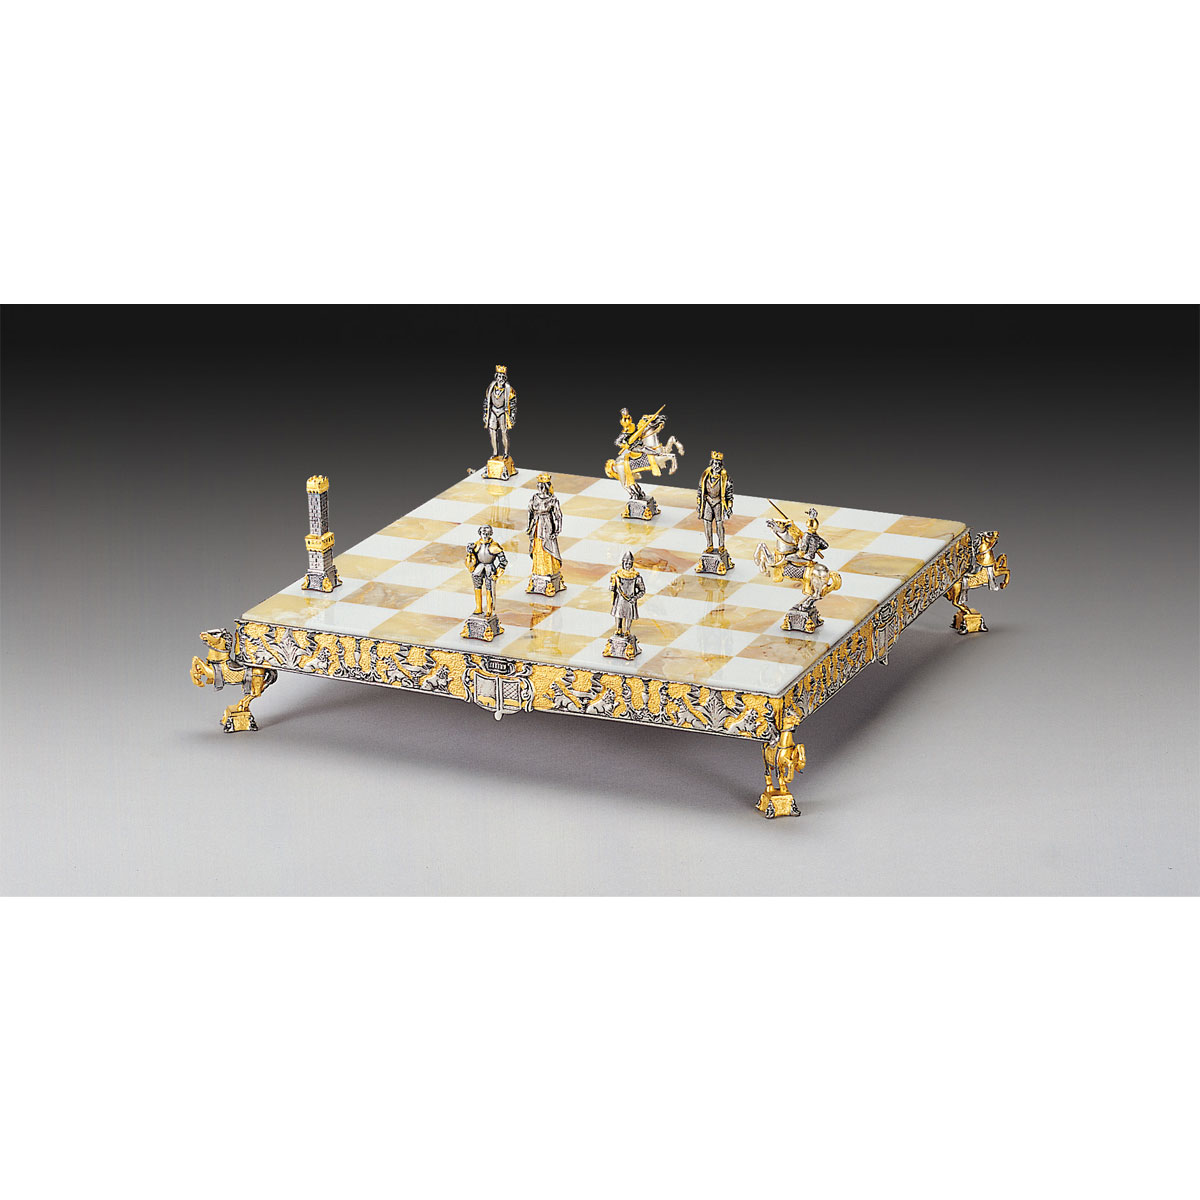 Medieval Themed Chess Set - Gold & Silver - Small